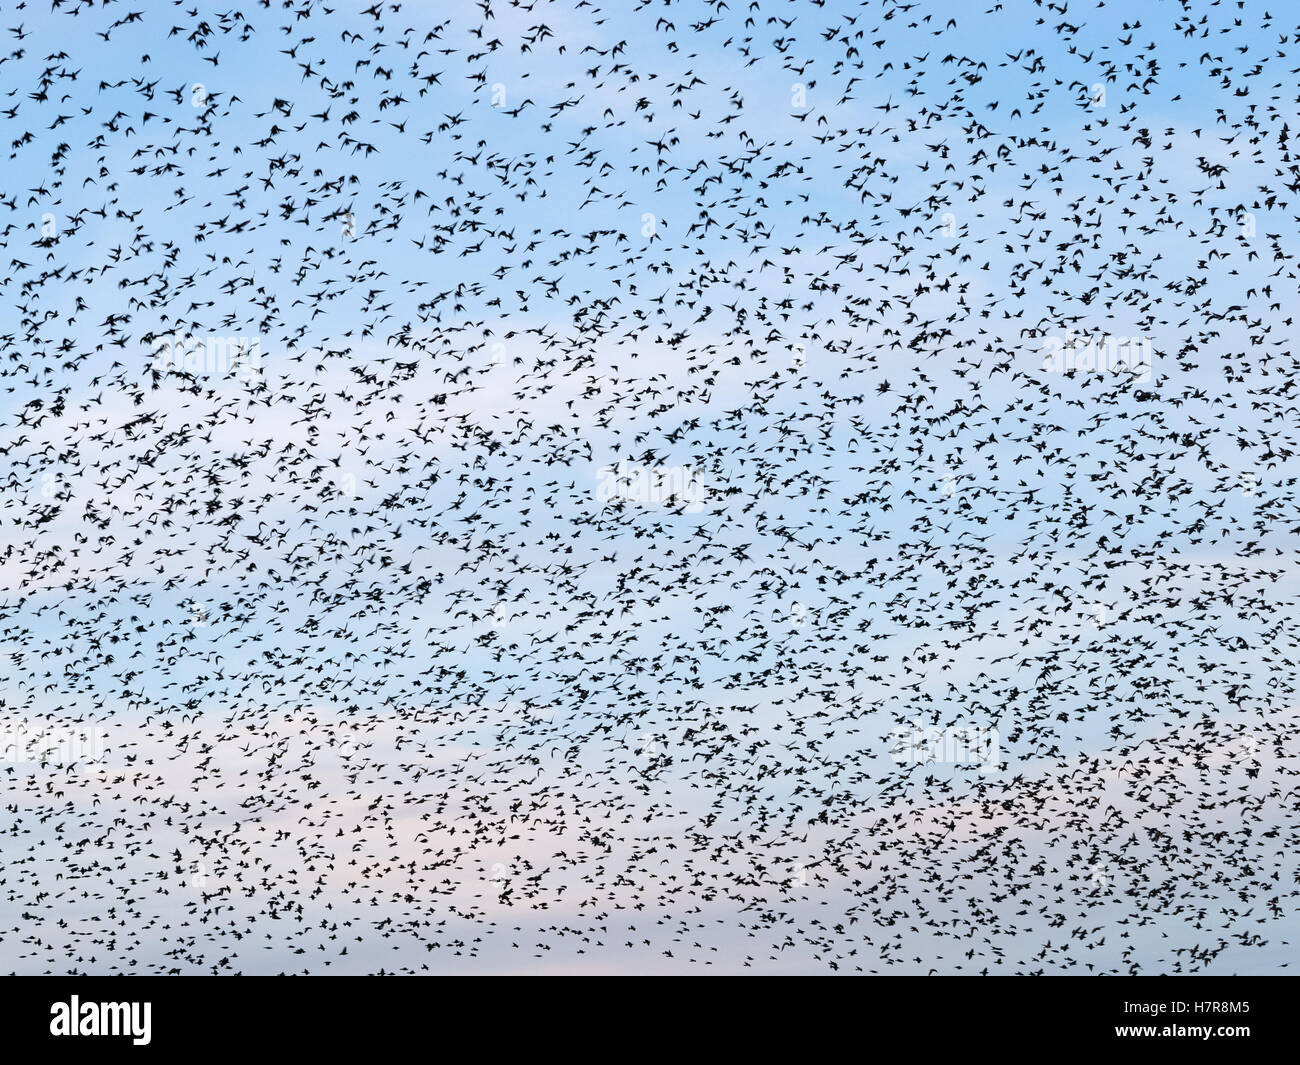 Sky full of starlings birds during a murmuration in Aberystwyth, Wales UK. - Stock Image